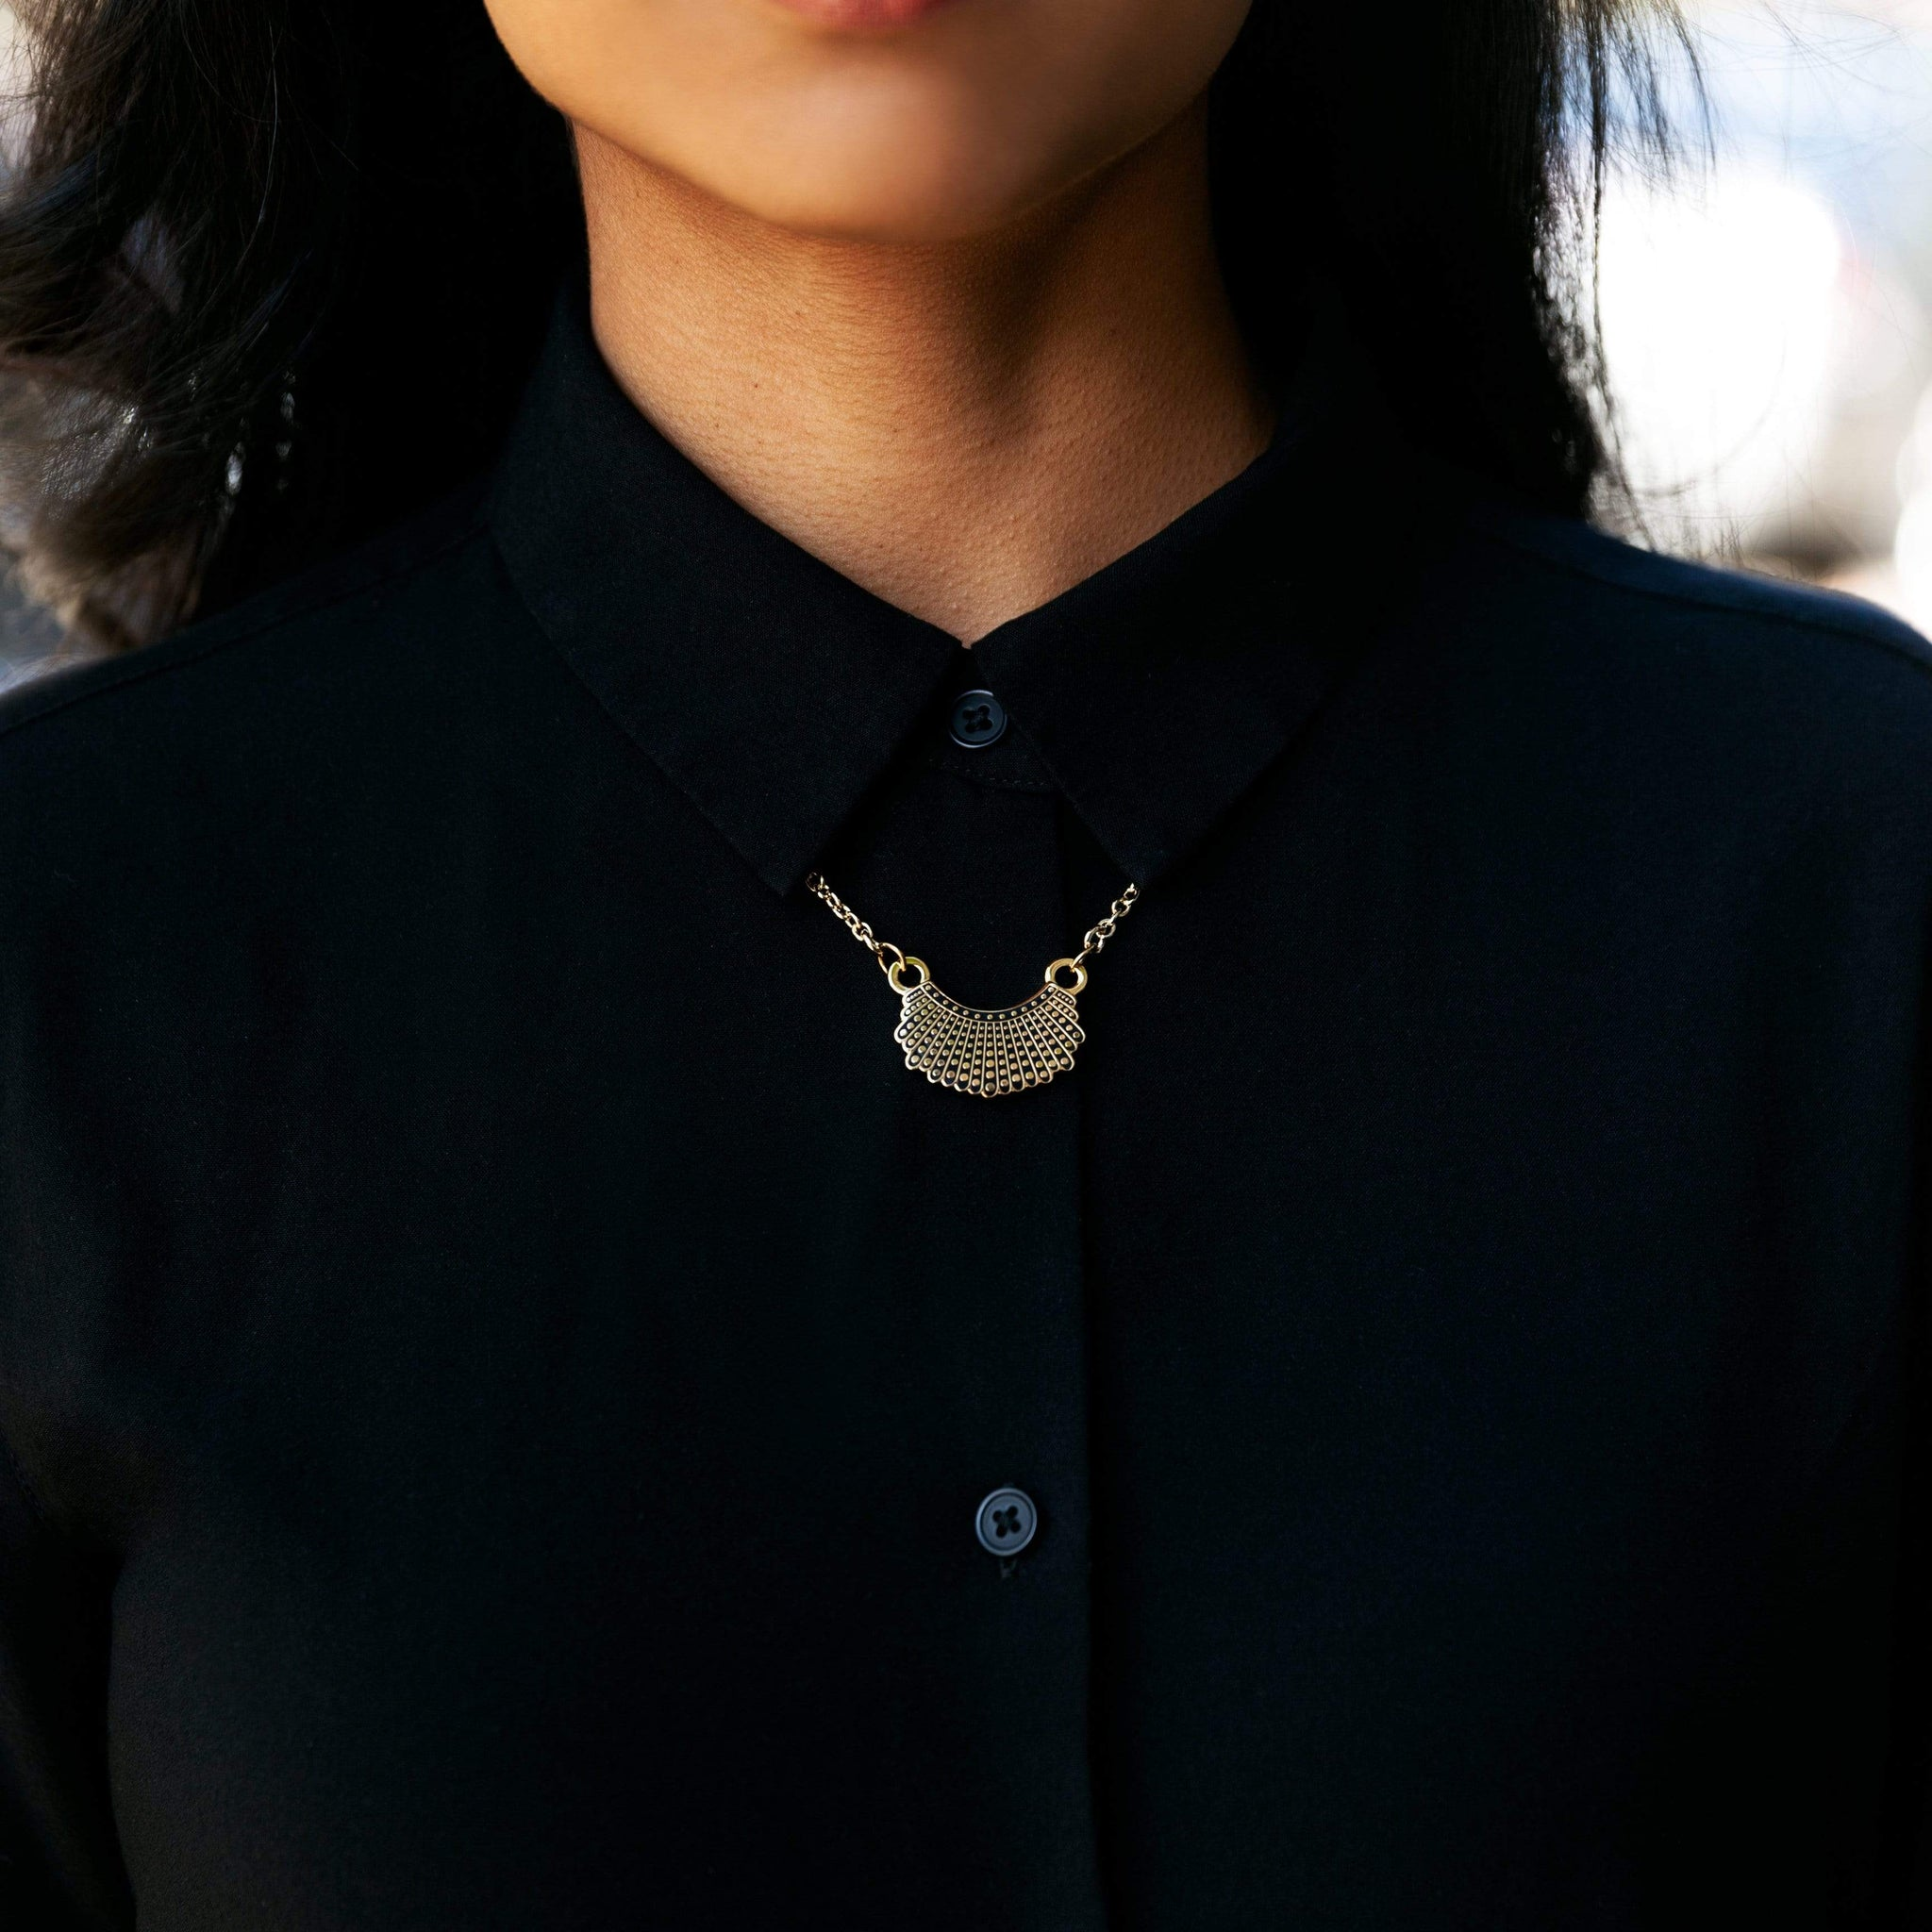 Dissent Collar Hook and Hoop + Necklace (set)